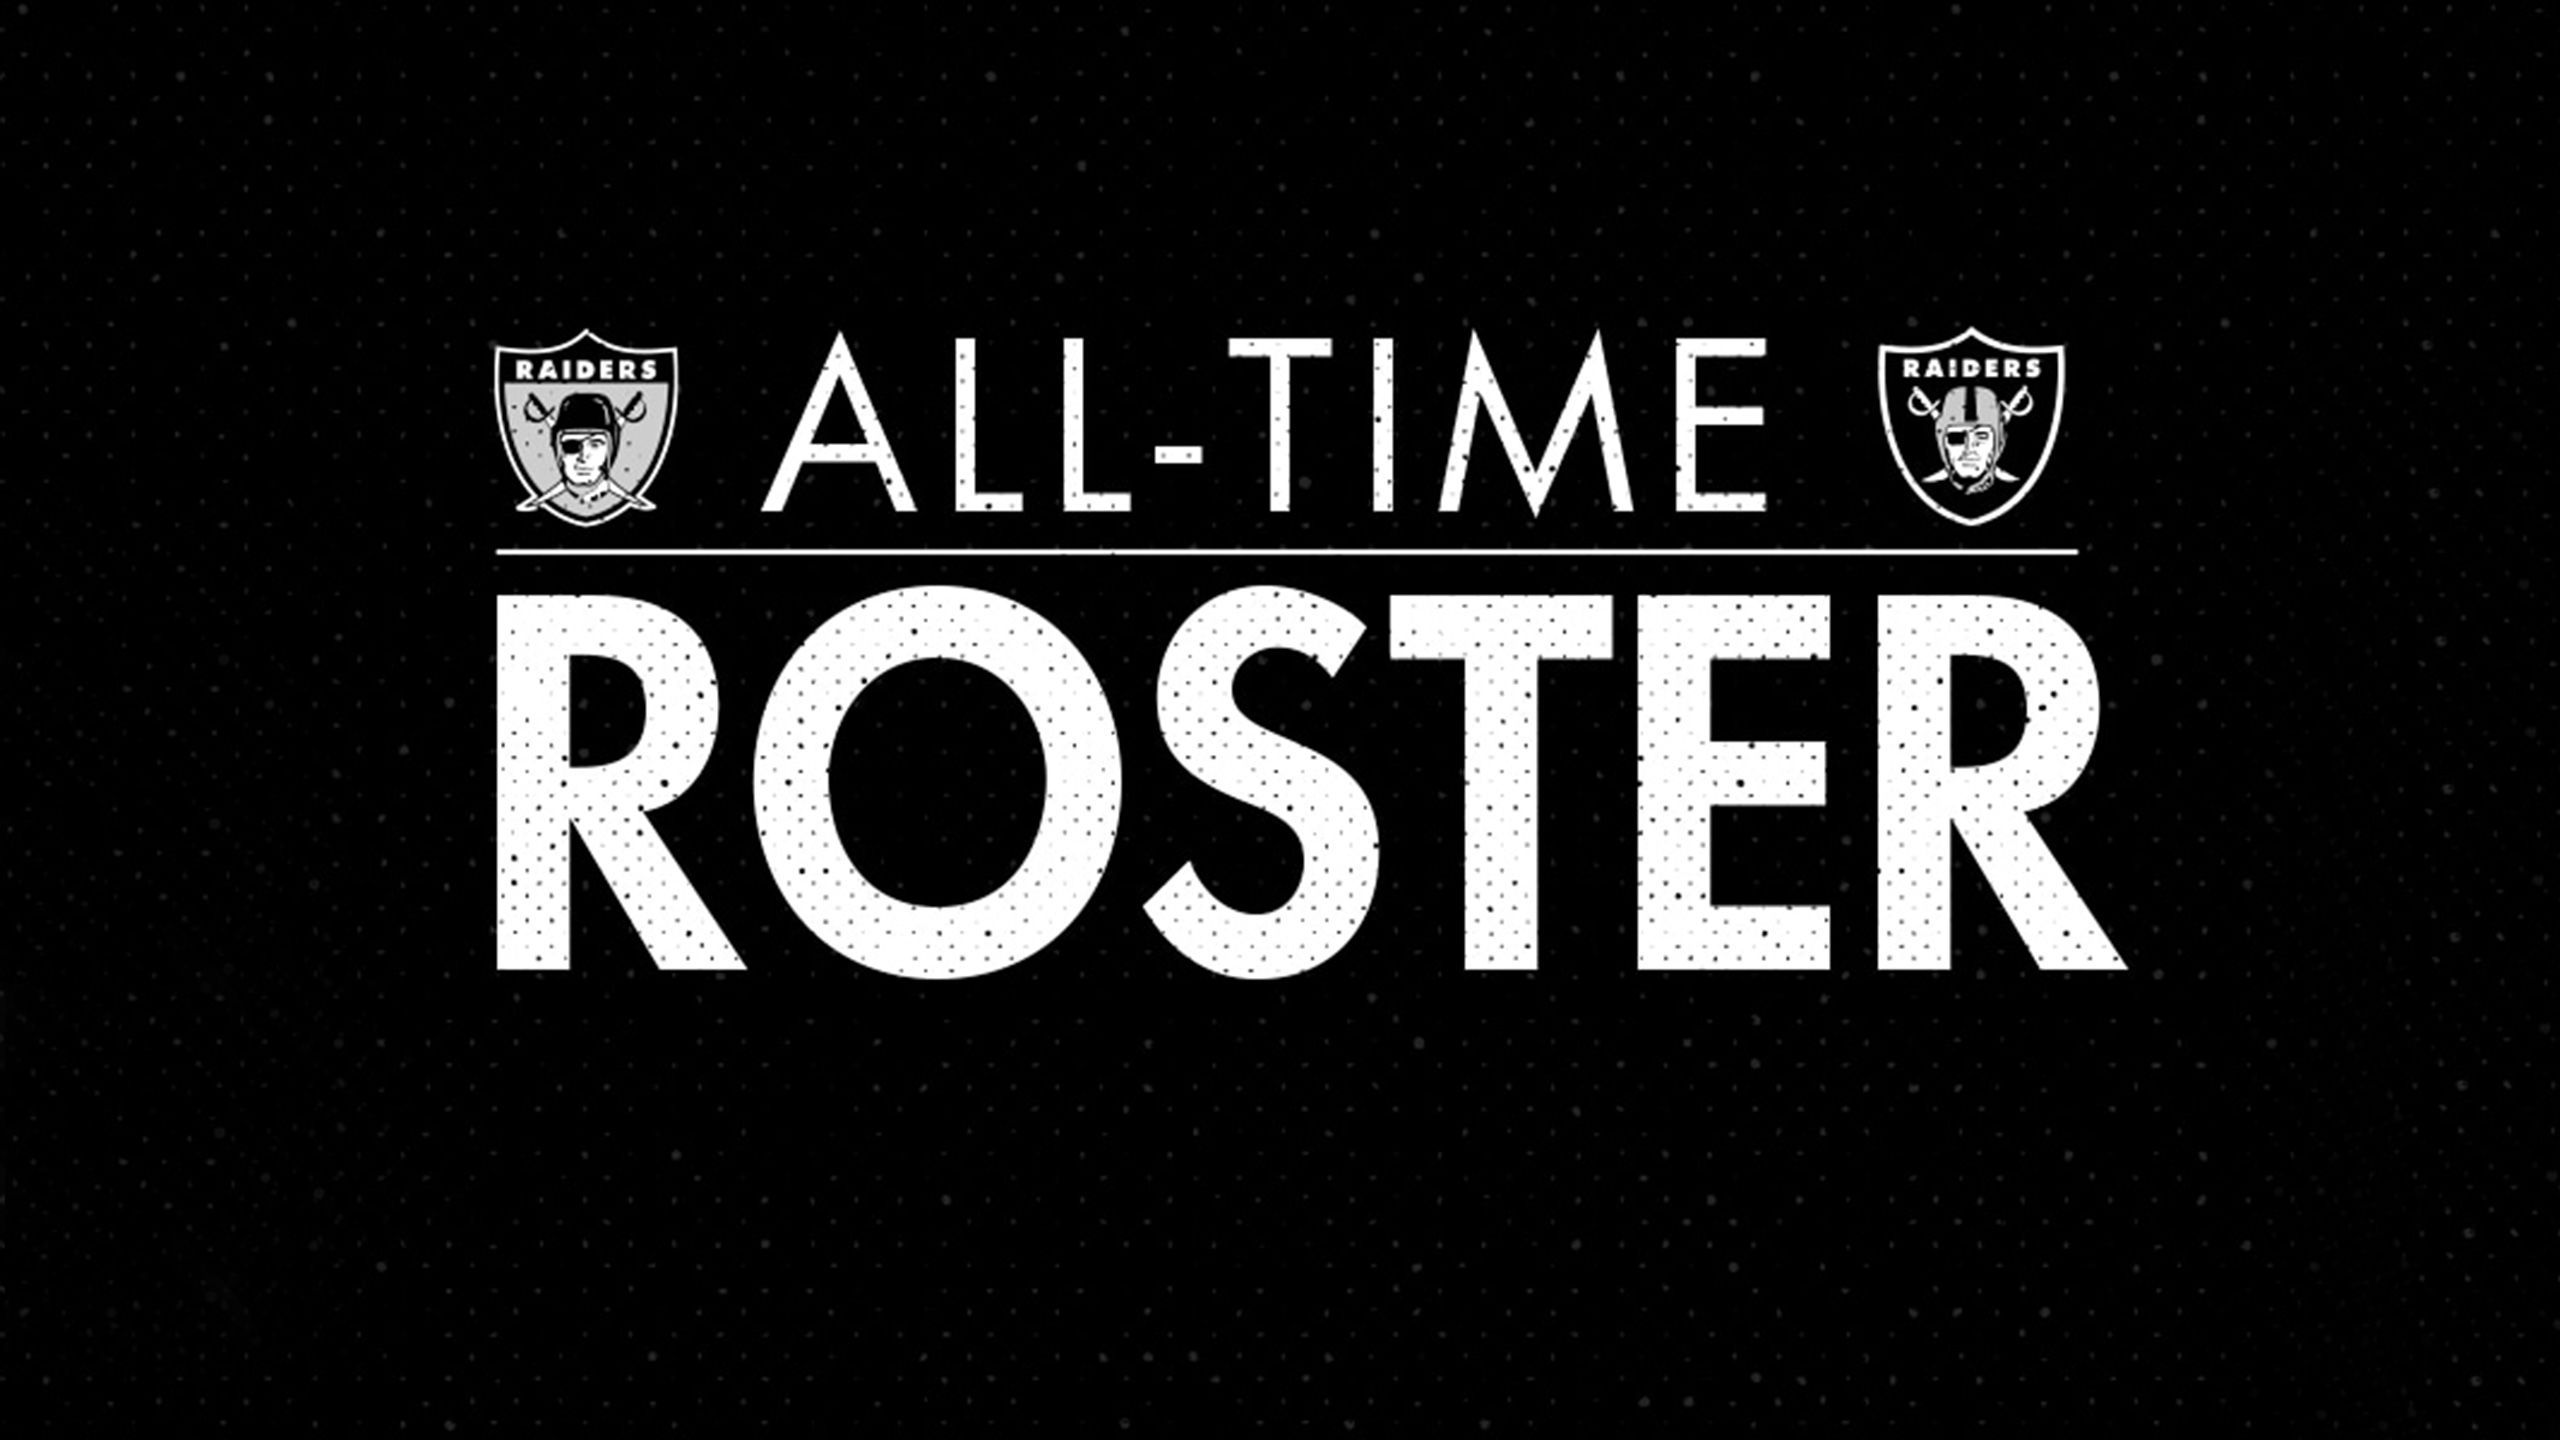 View the Raiders All-Time Roster